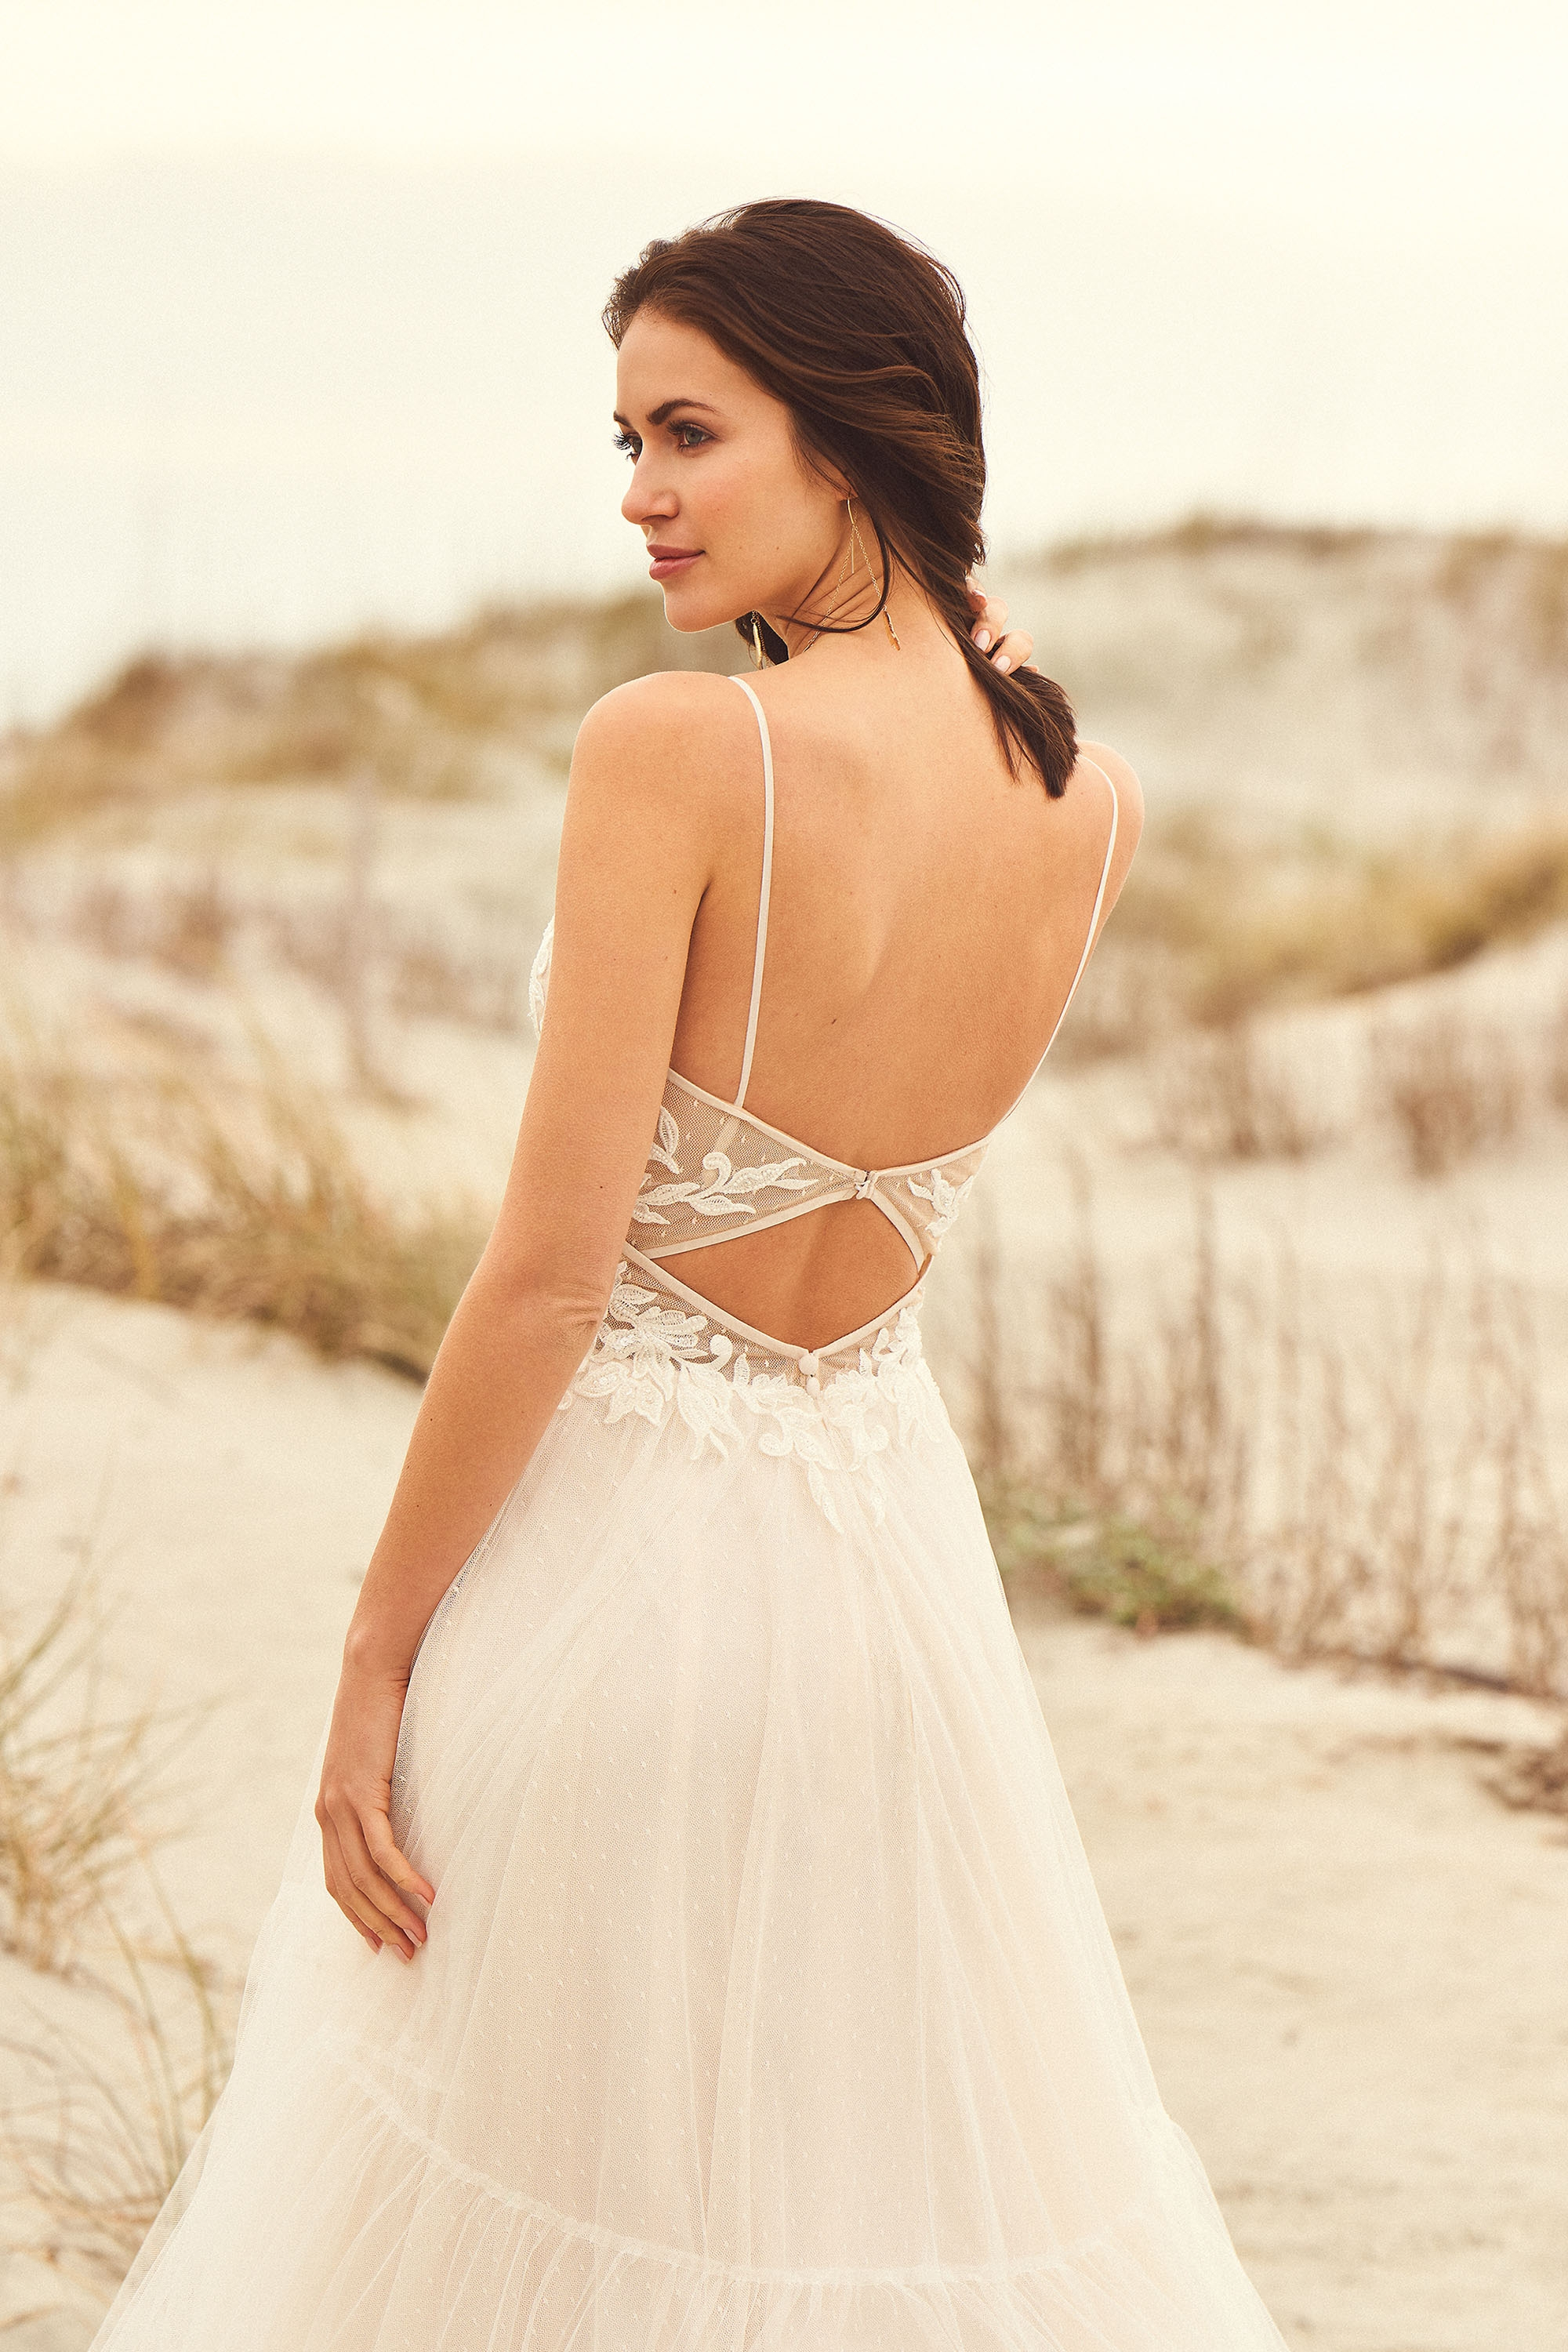 66105 - Gathered tulle A-line skirt with illusion bodice and delicate keyhole back